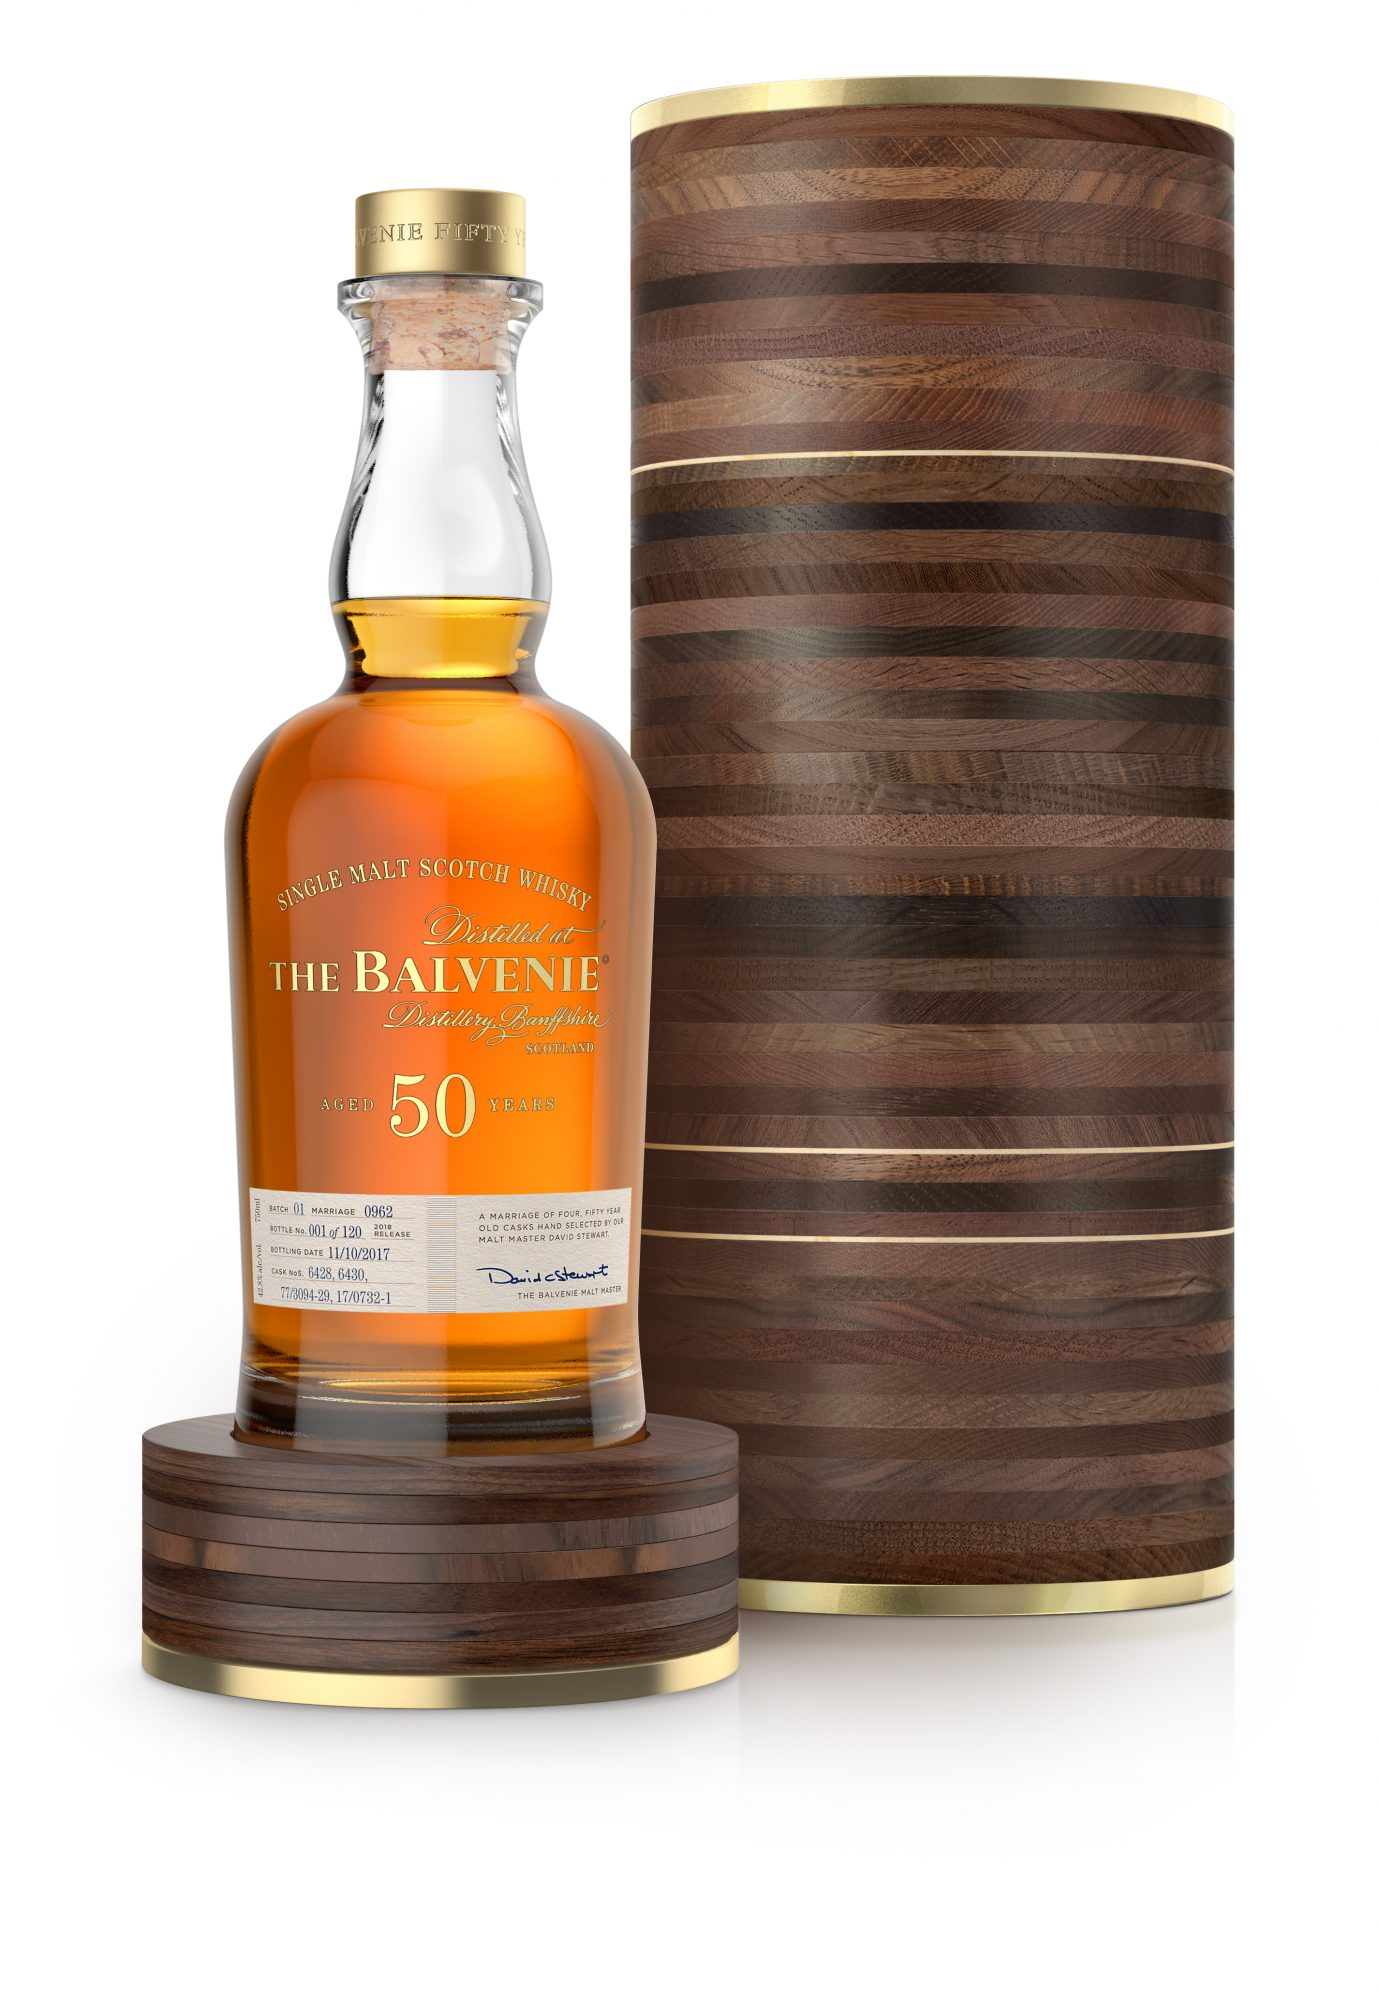 The Balvenie Unveils New 50-Year-Old Scotch Whisky